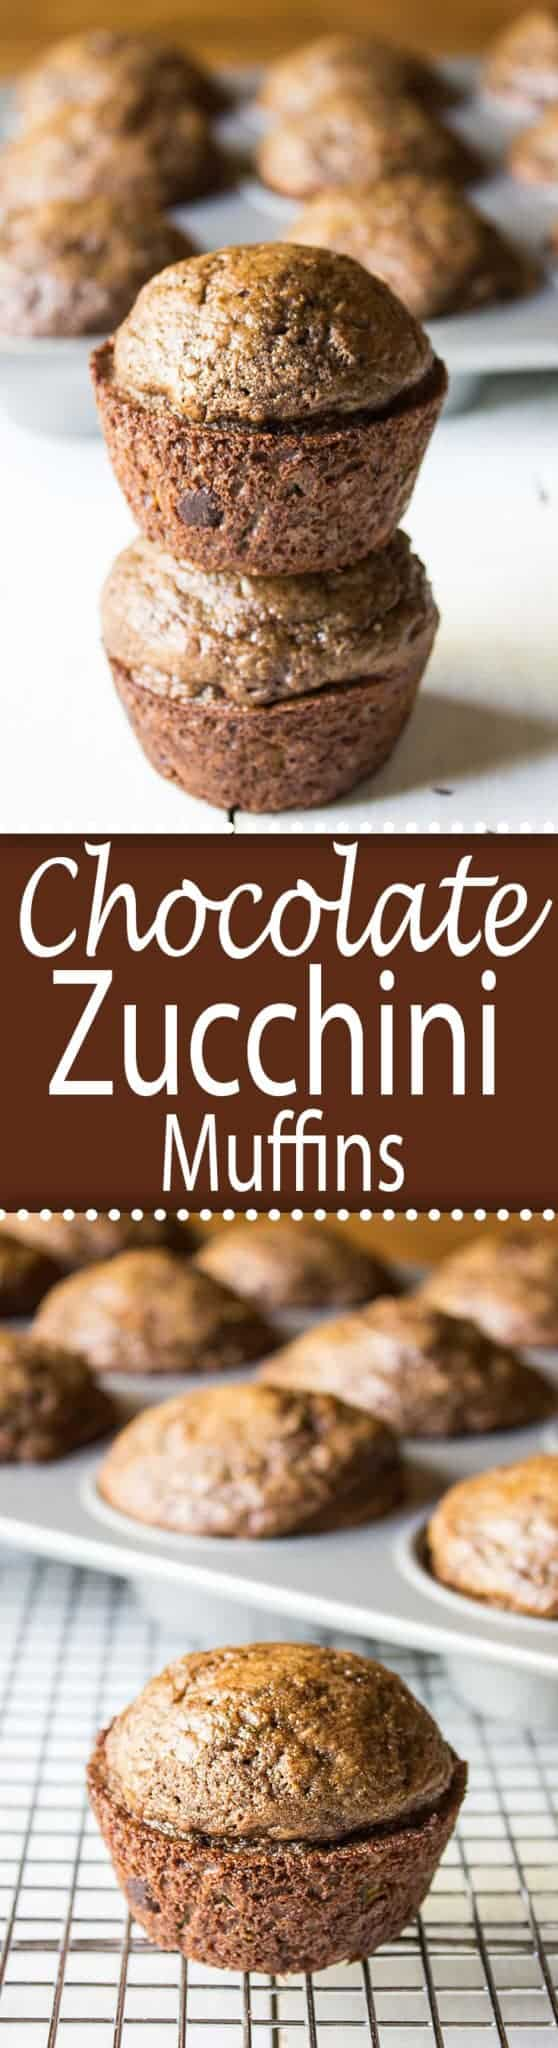 Chocolate Zucchini Muffins are moist and delicious. These muffins are studded with chocolate chips! #muffin #zucchinimuffin